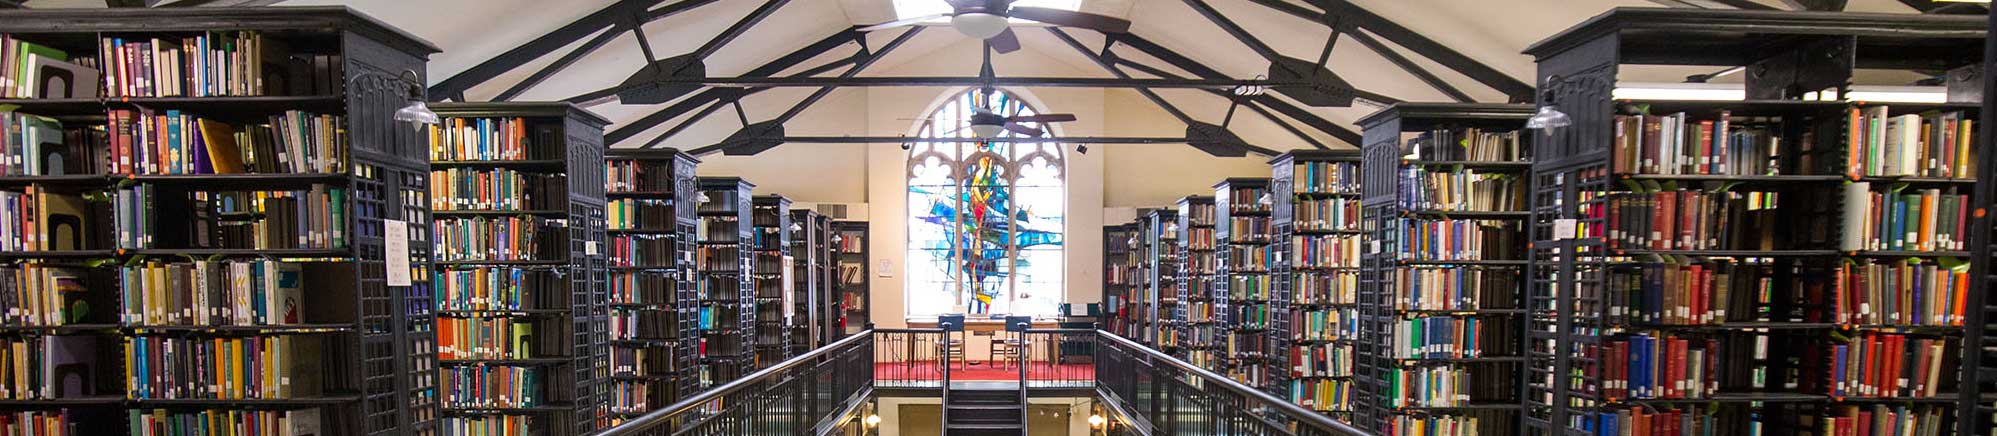 Image of the Krauth Memorial Library